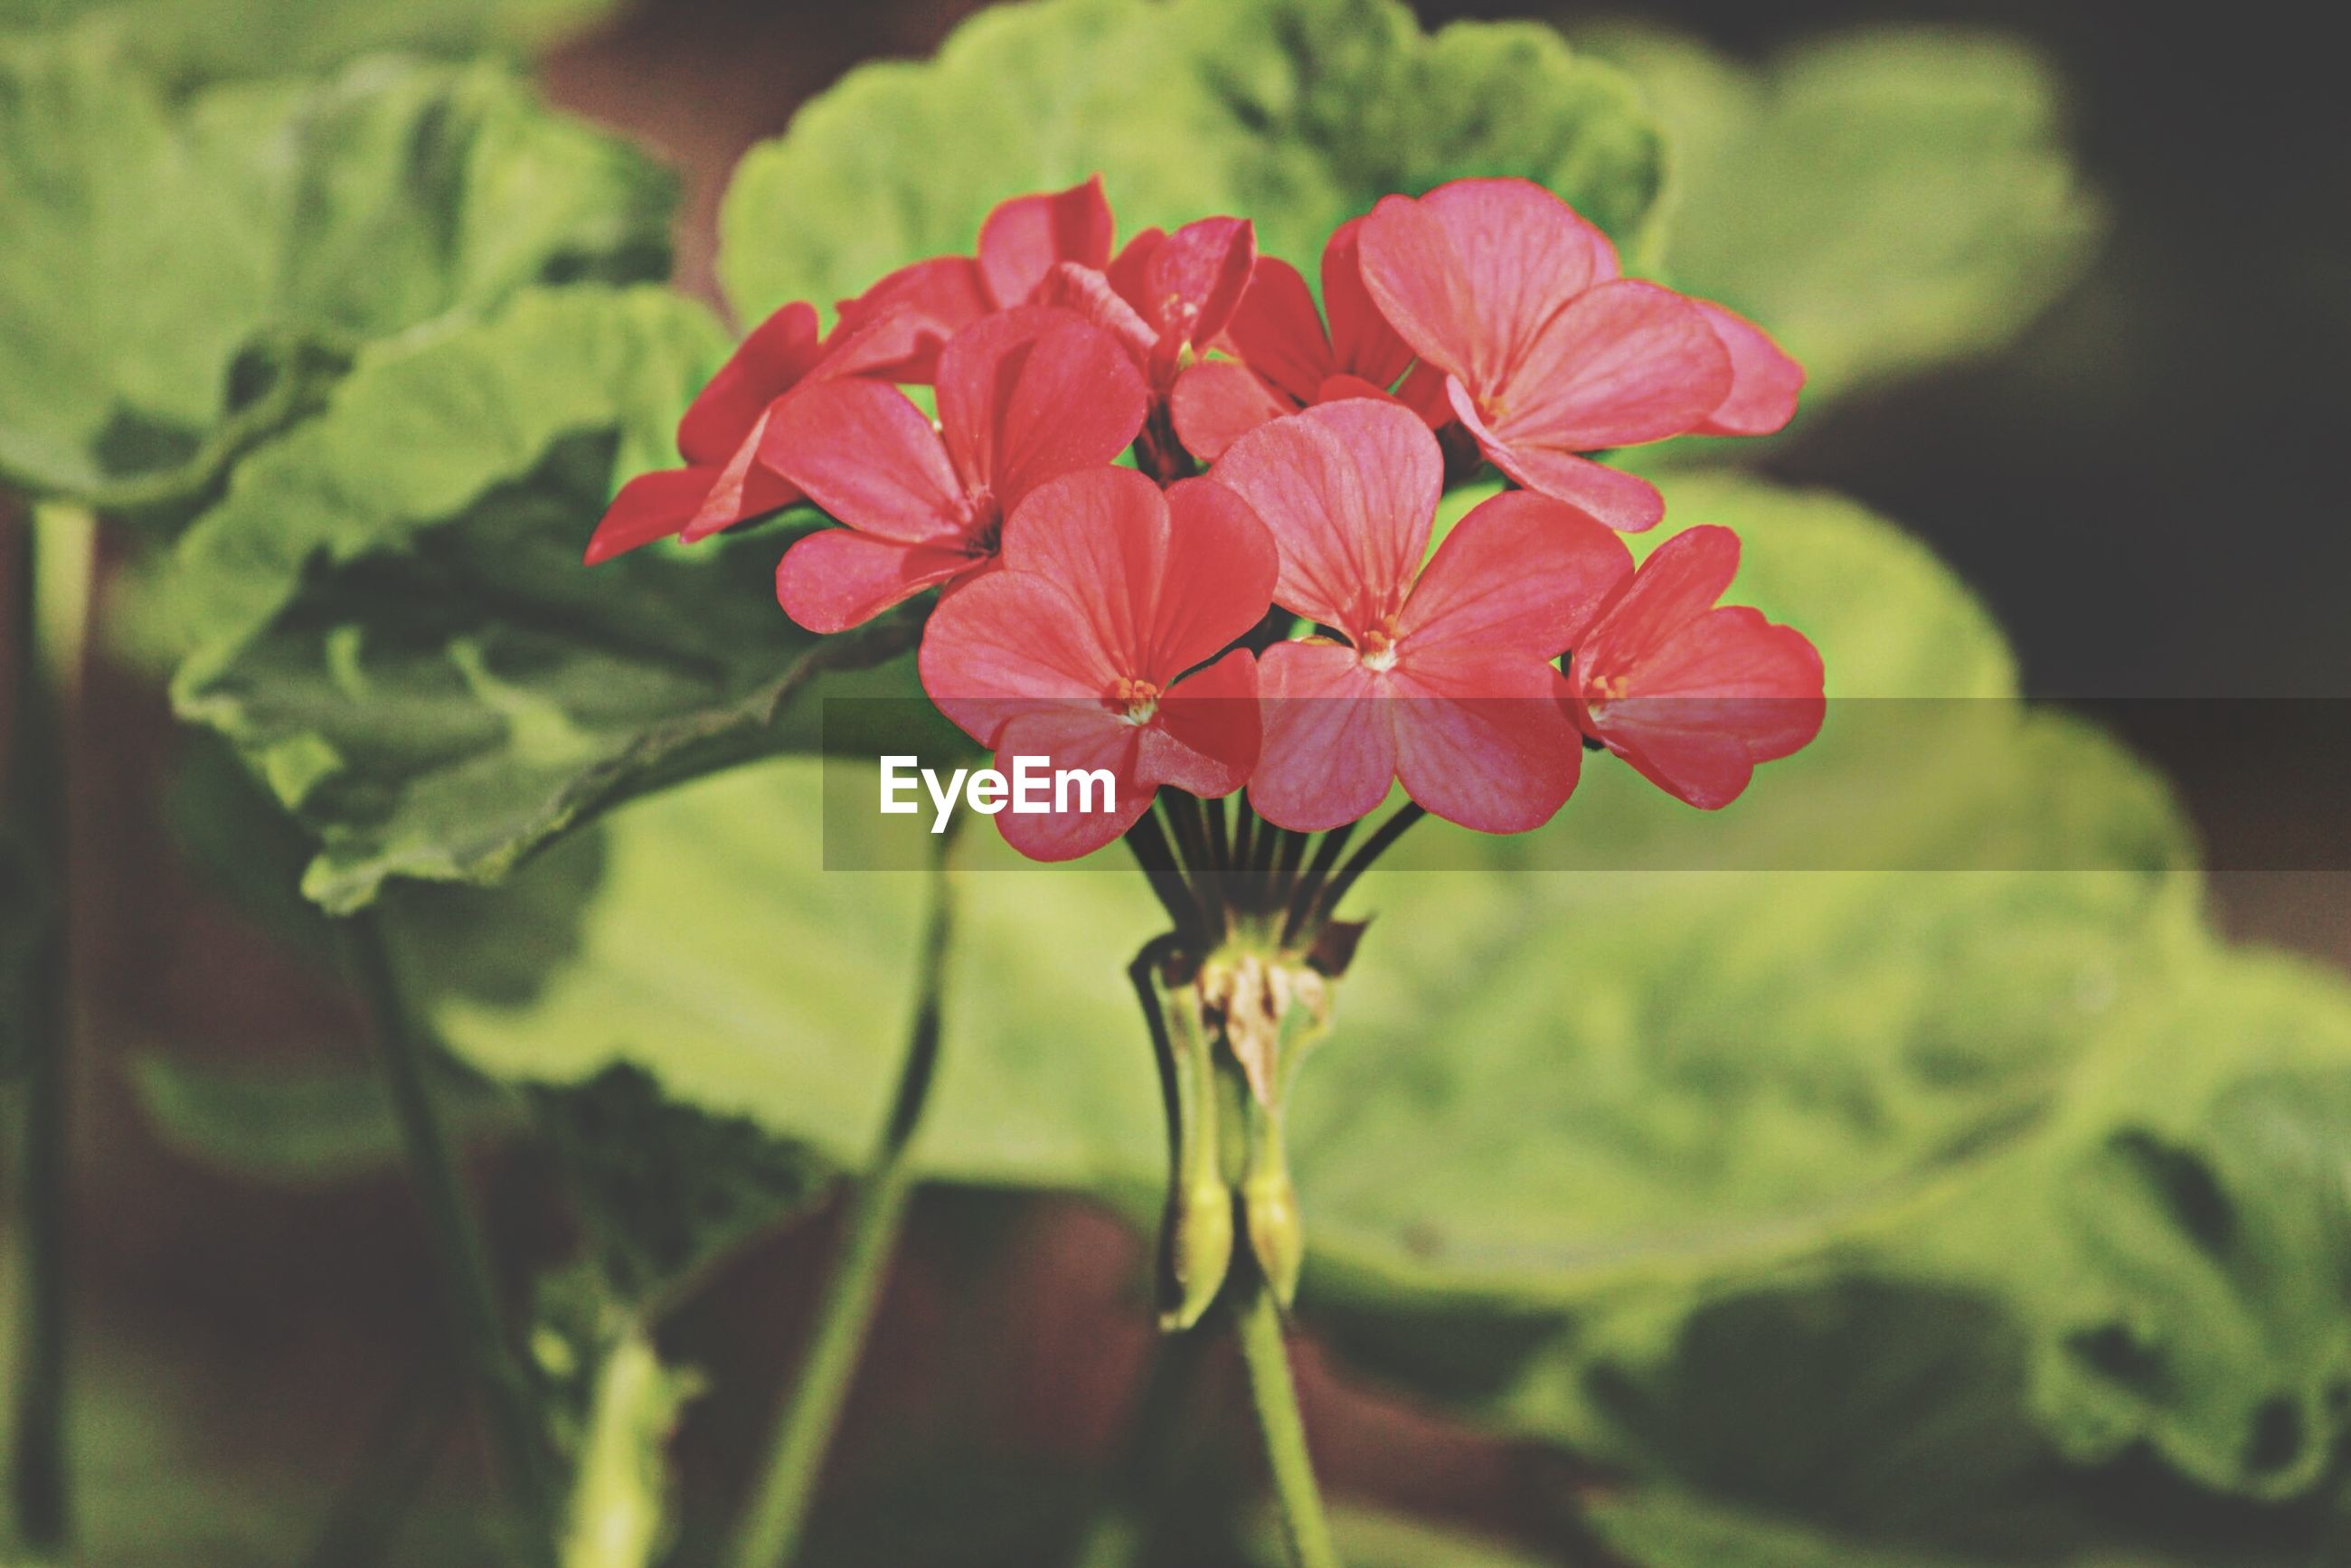 flower, freshness, focus on foreground, fragility, growth, petal, close-up, beauty in nature, plant, flower head, nature, red, blooming, leaf, selective focus, bud, stem, day, in bloom, outdoors